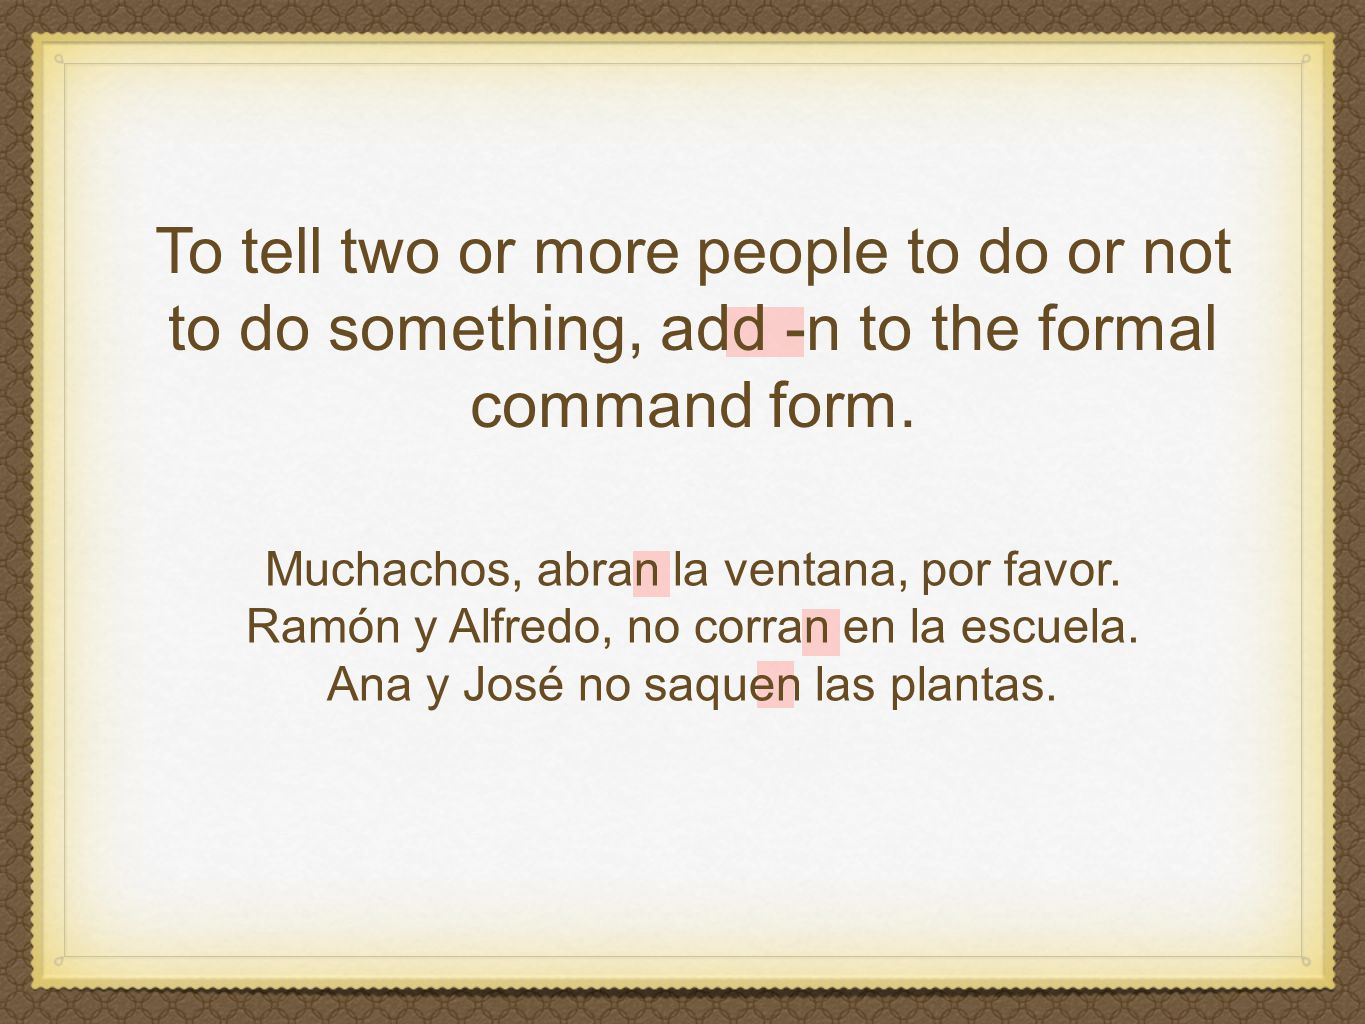 To tell two or more people to do or not to do something, add -n to the formal command form.